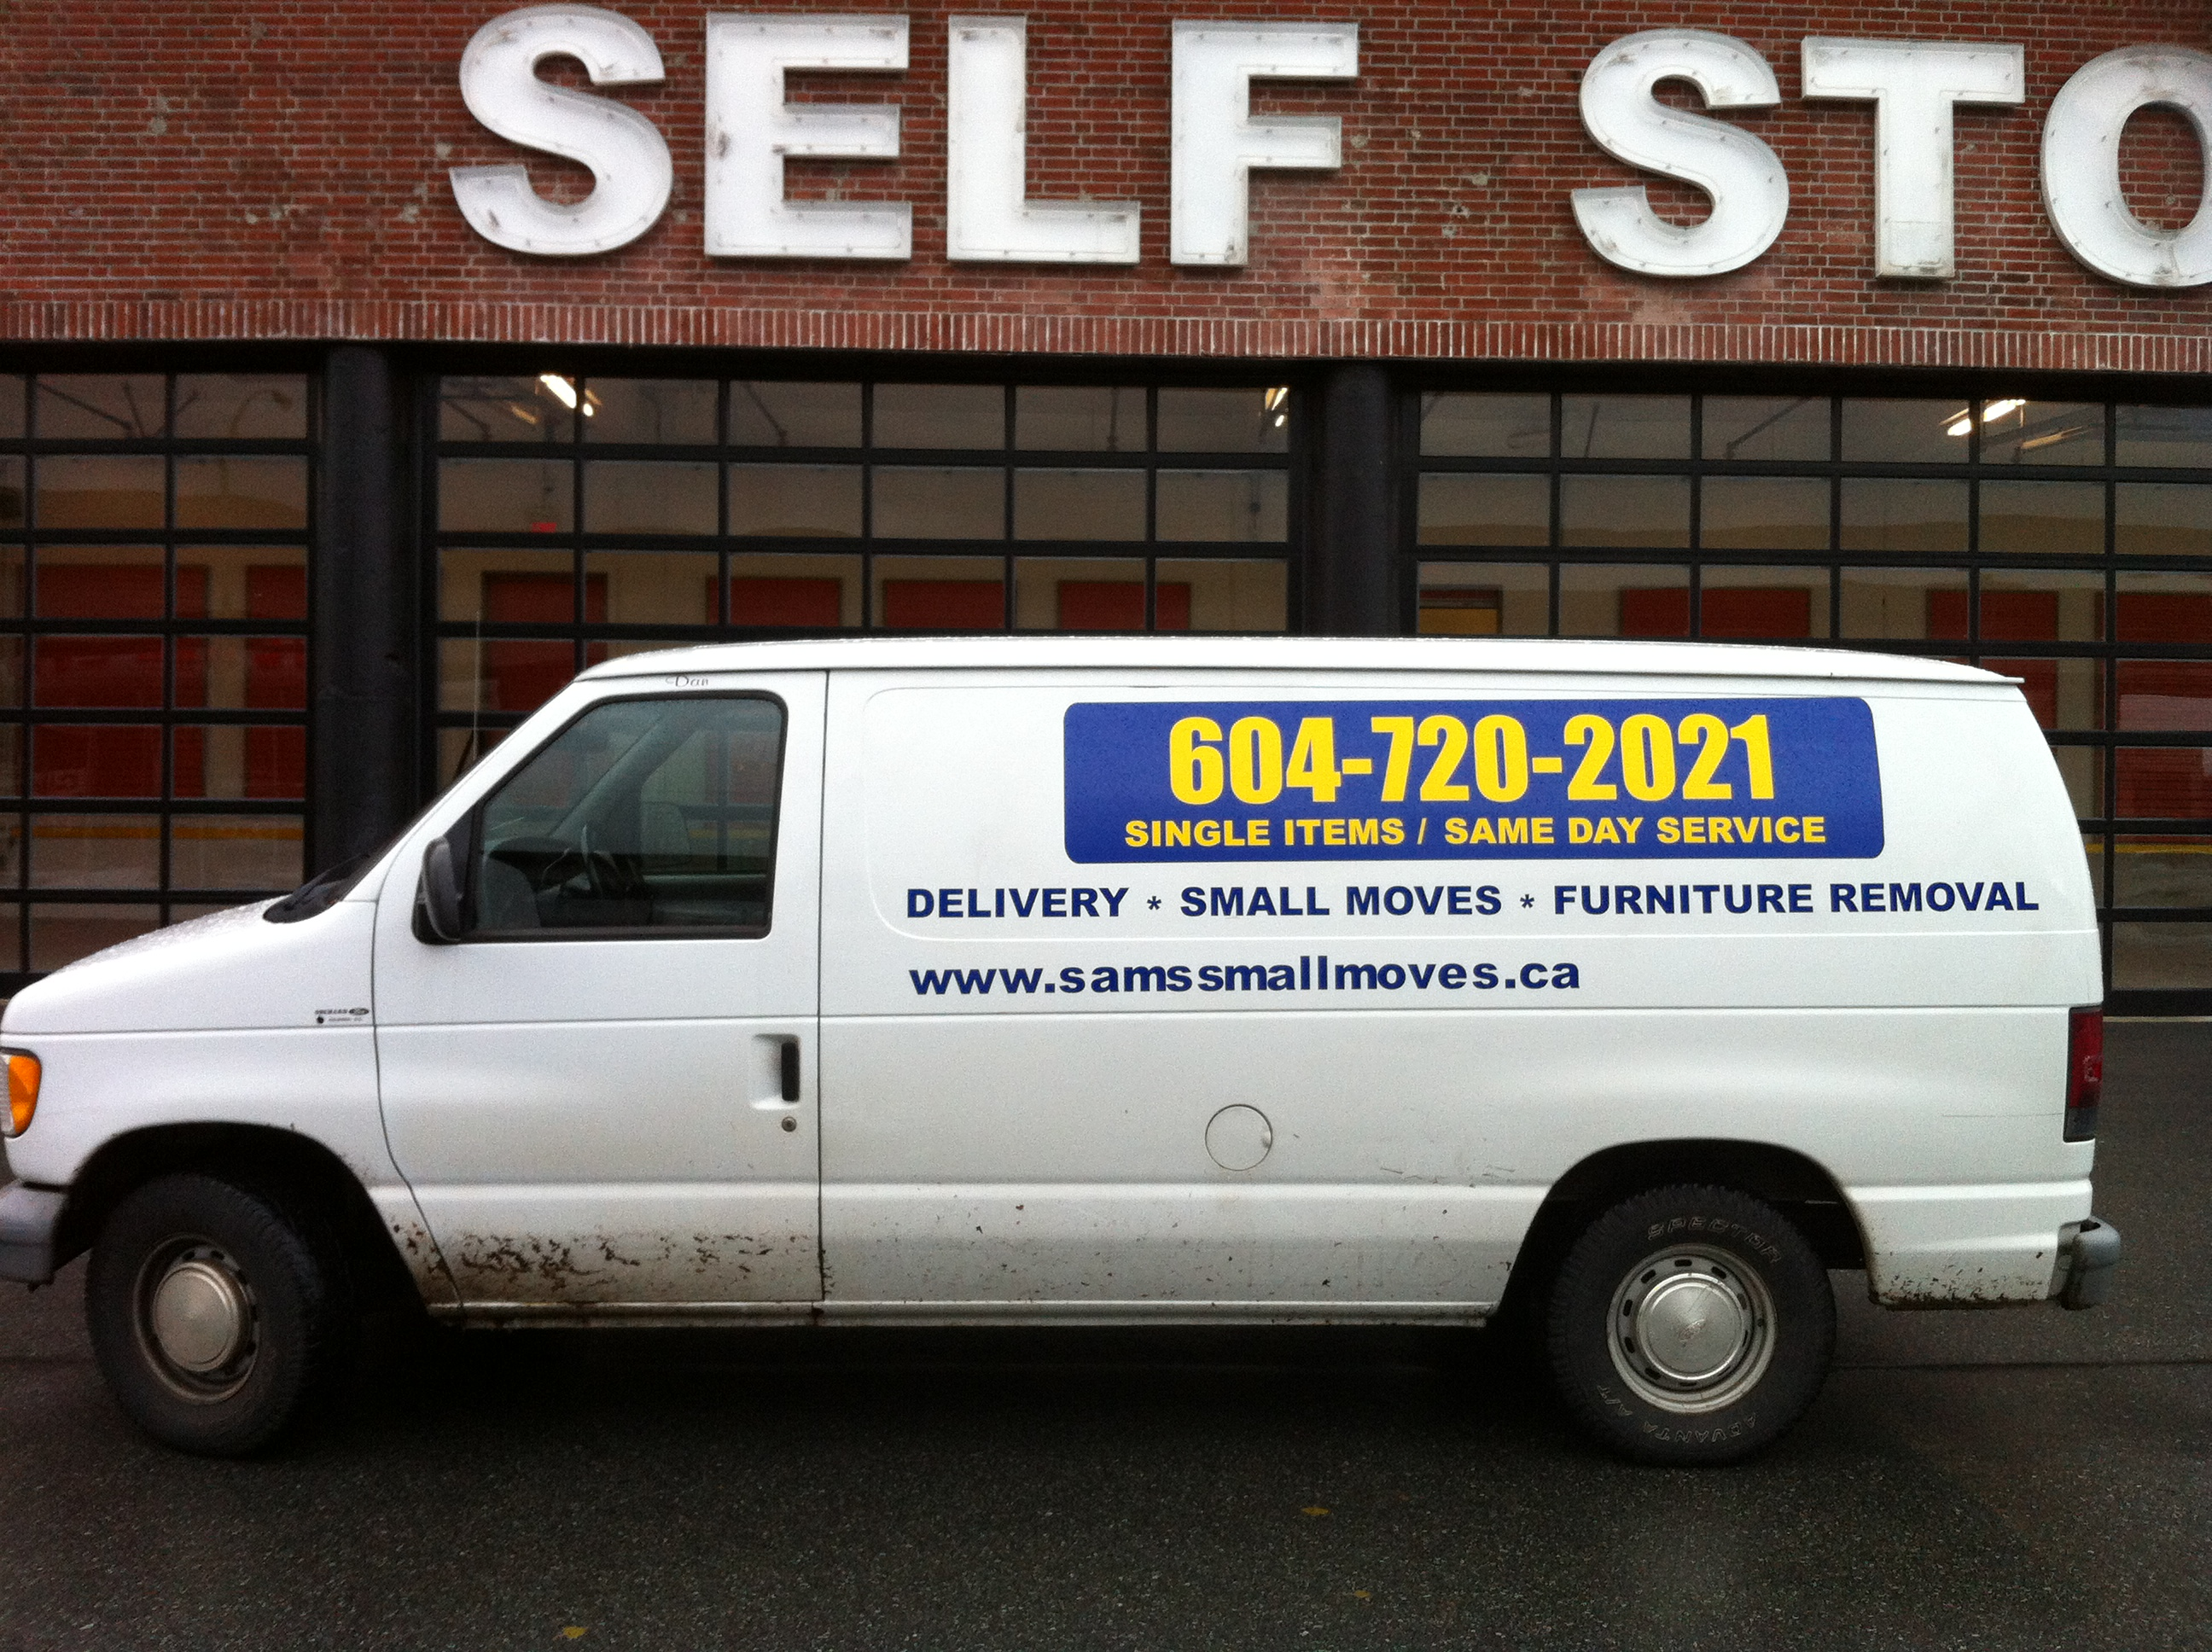 Self Storage In 750 Terminal Ave Vancouver Sam S Small Moves Ltd Cheap Delivery Small